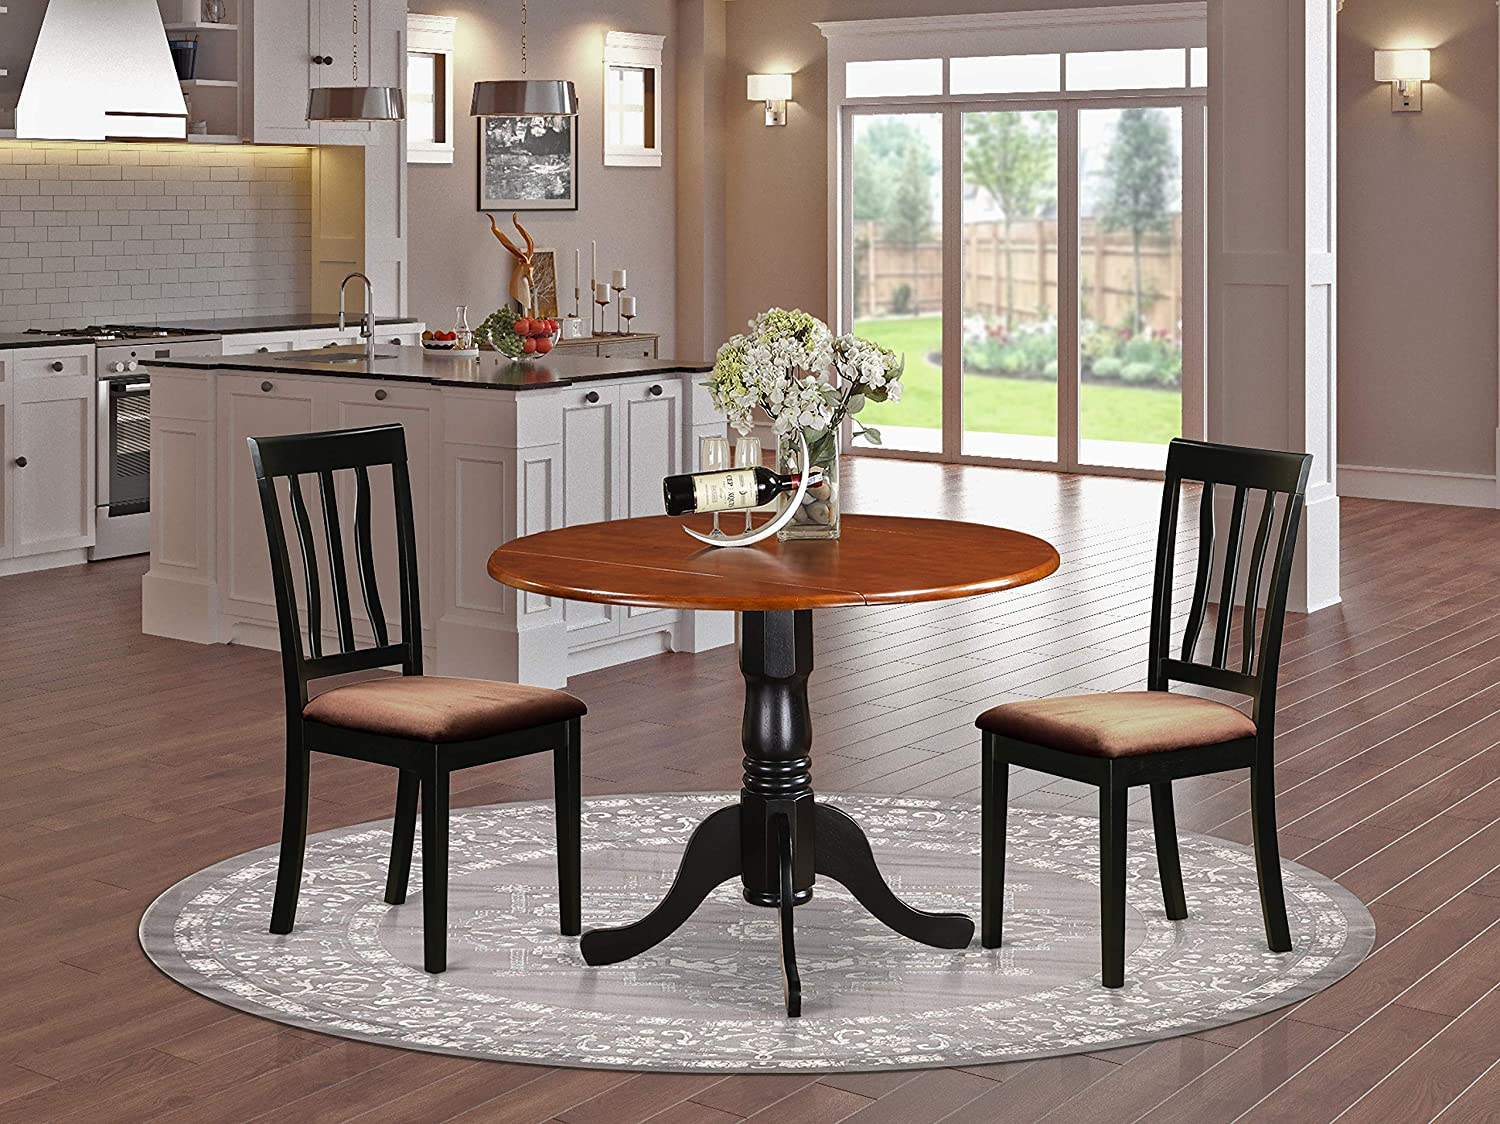 DLAN3-BCH-C Dining set – 3 Pcs with 2 Wood Chairs